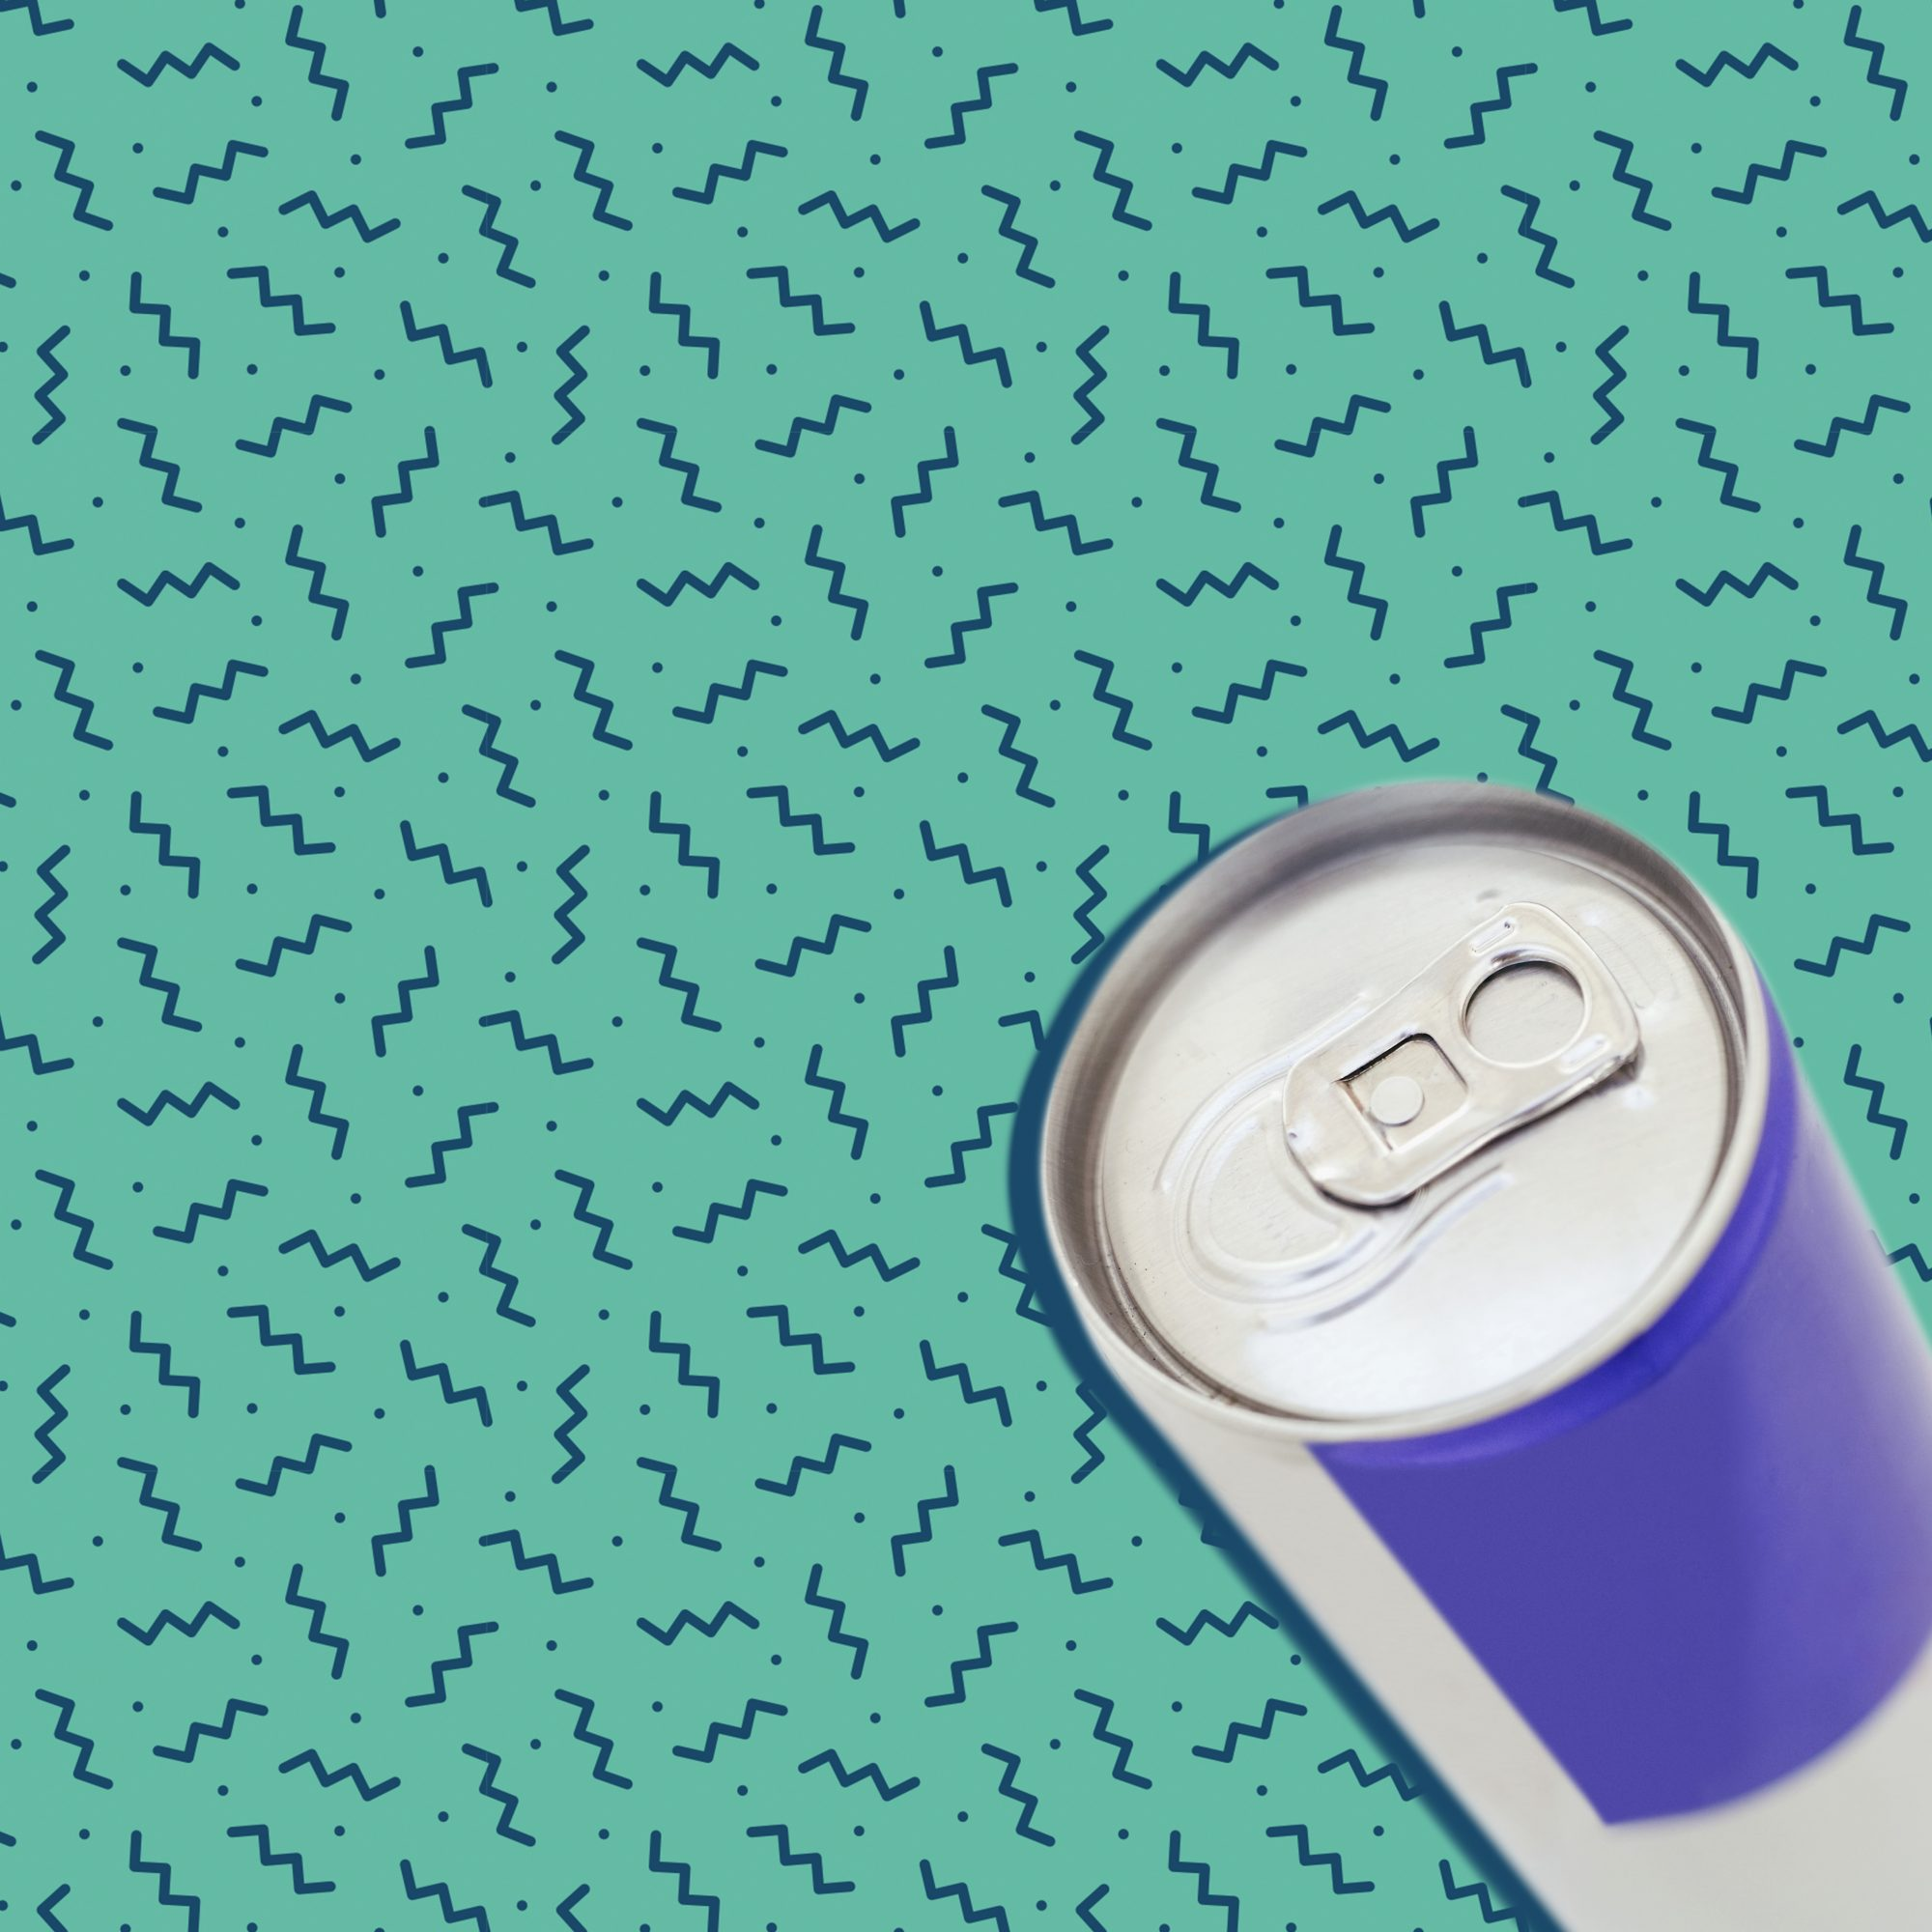 Energy Drinks May Cause Heart Problems—Here's How to Get a Natural Boost Instead